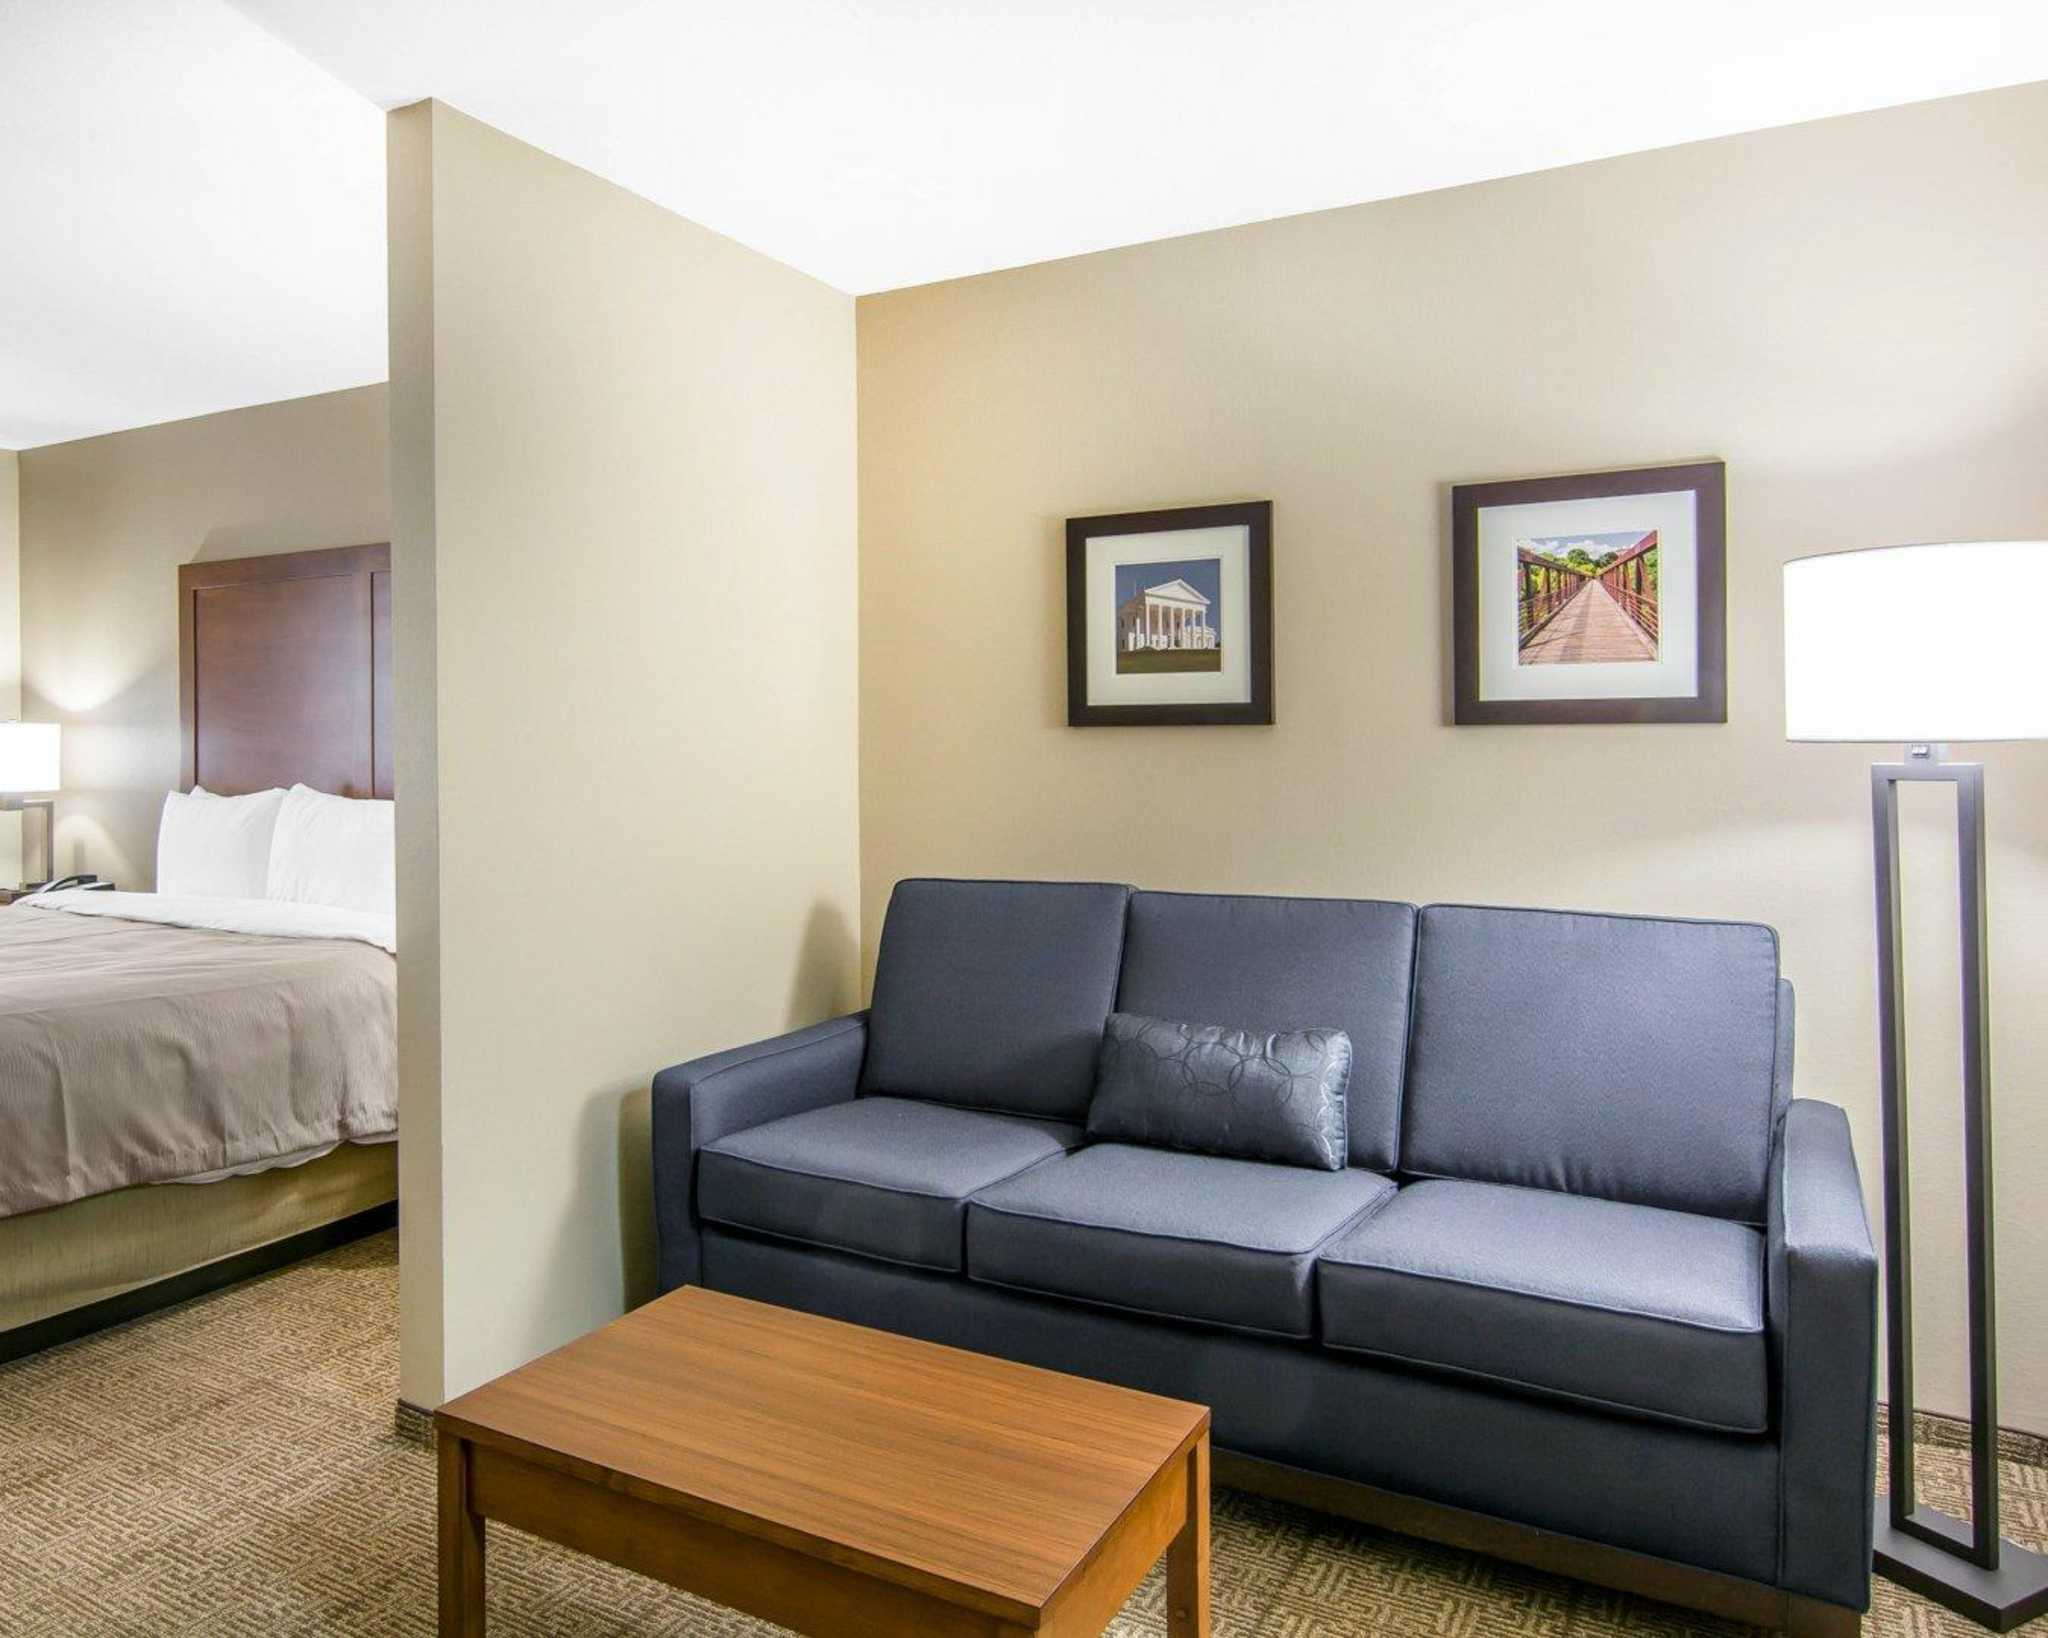 Comfort Inn South Chesterfield - Colonial Heights image 18